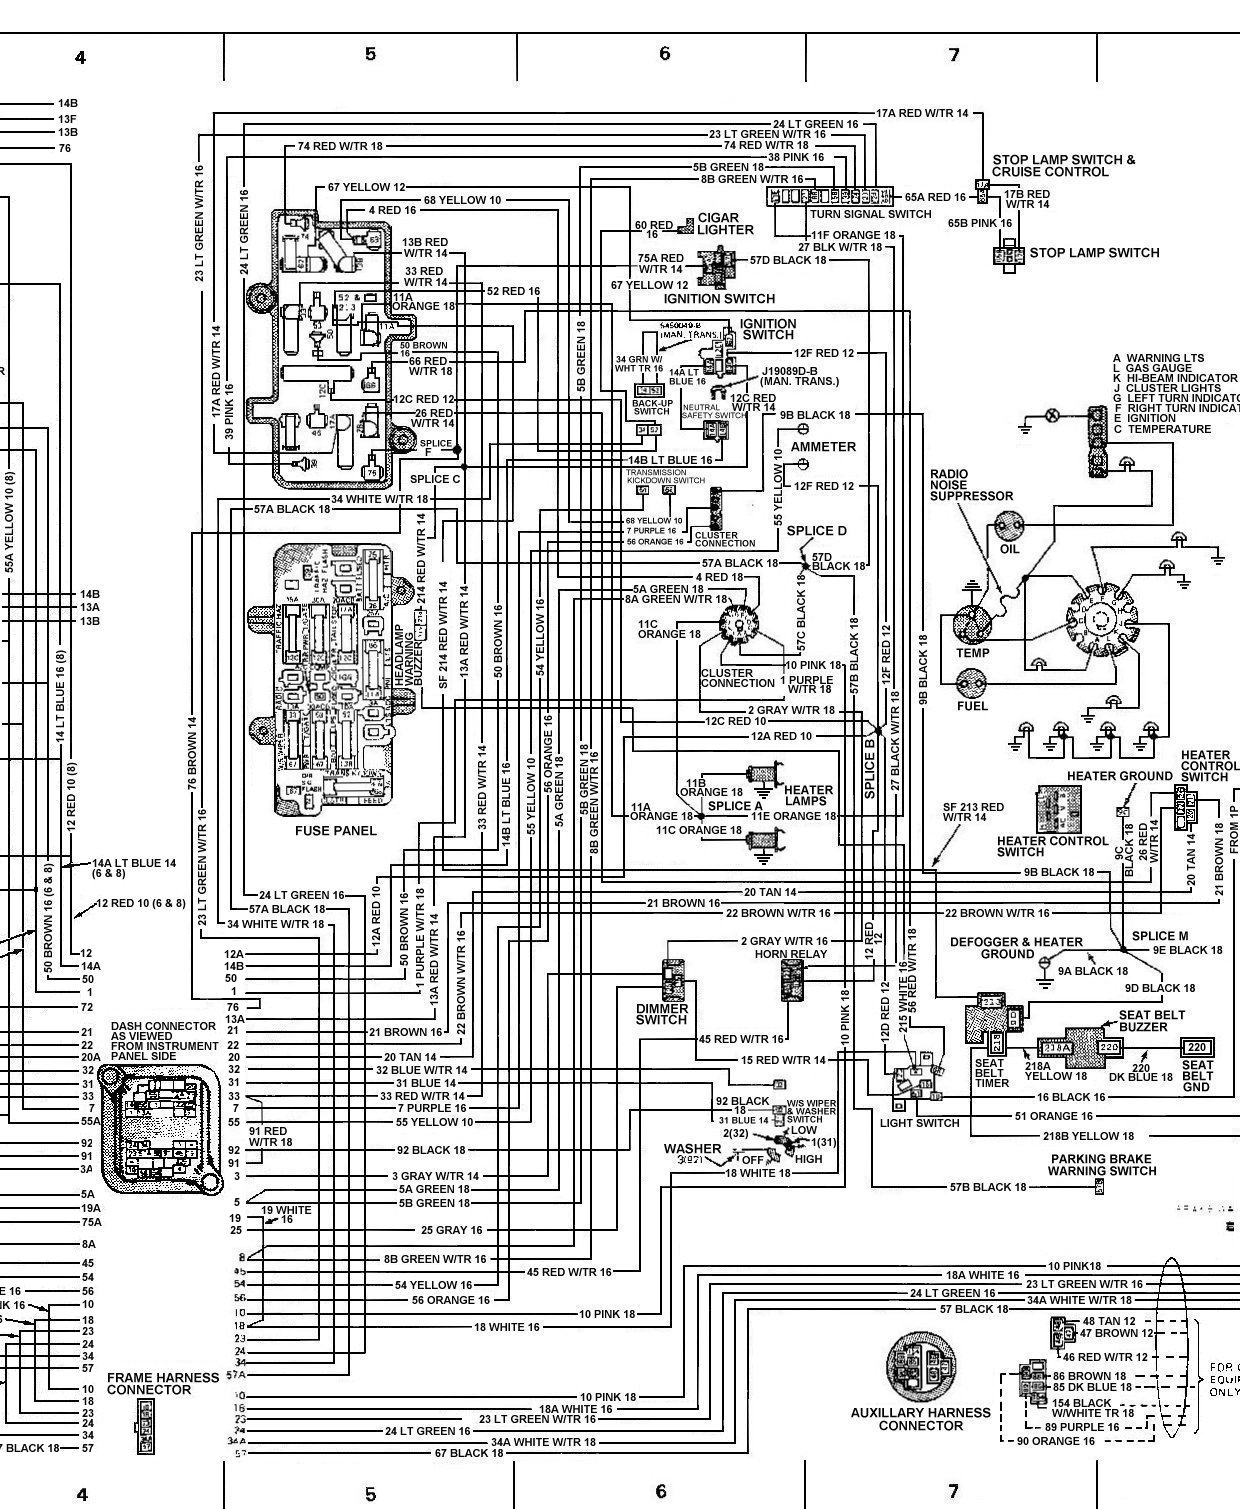 91 Jeep Cherokee Alternator Wiring Diagram : Jeep cherokee egr valve location get free image